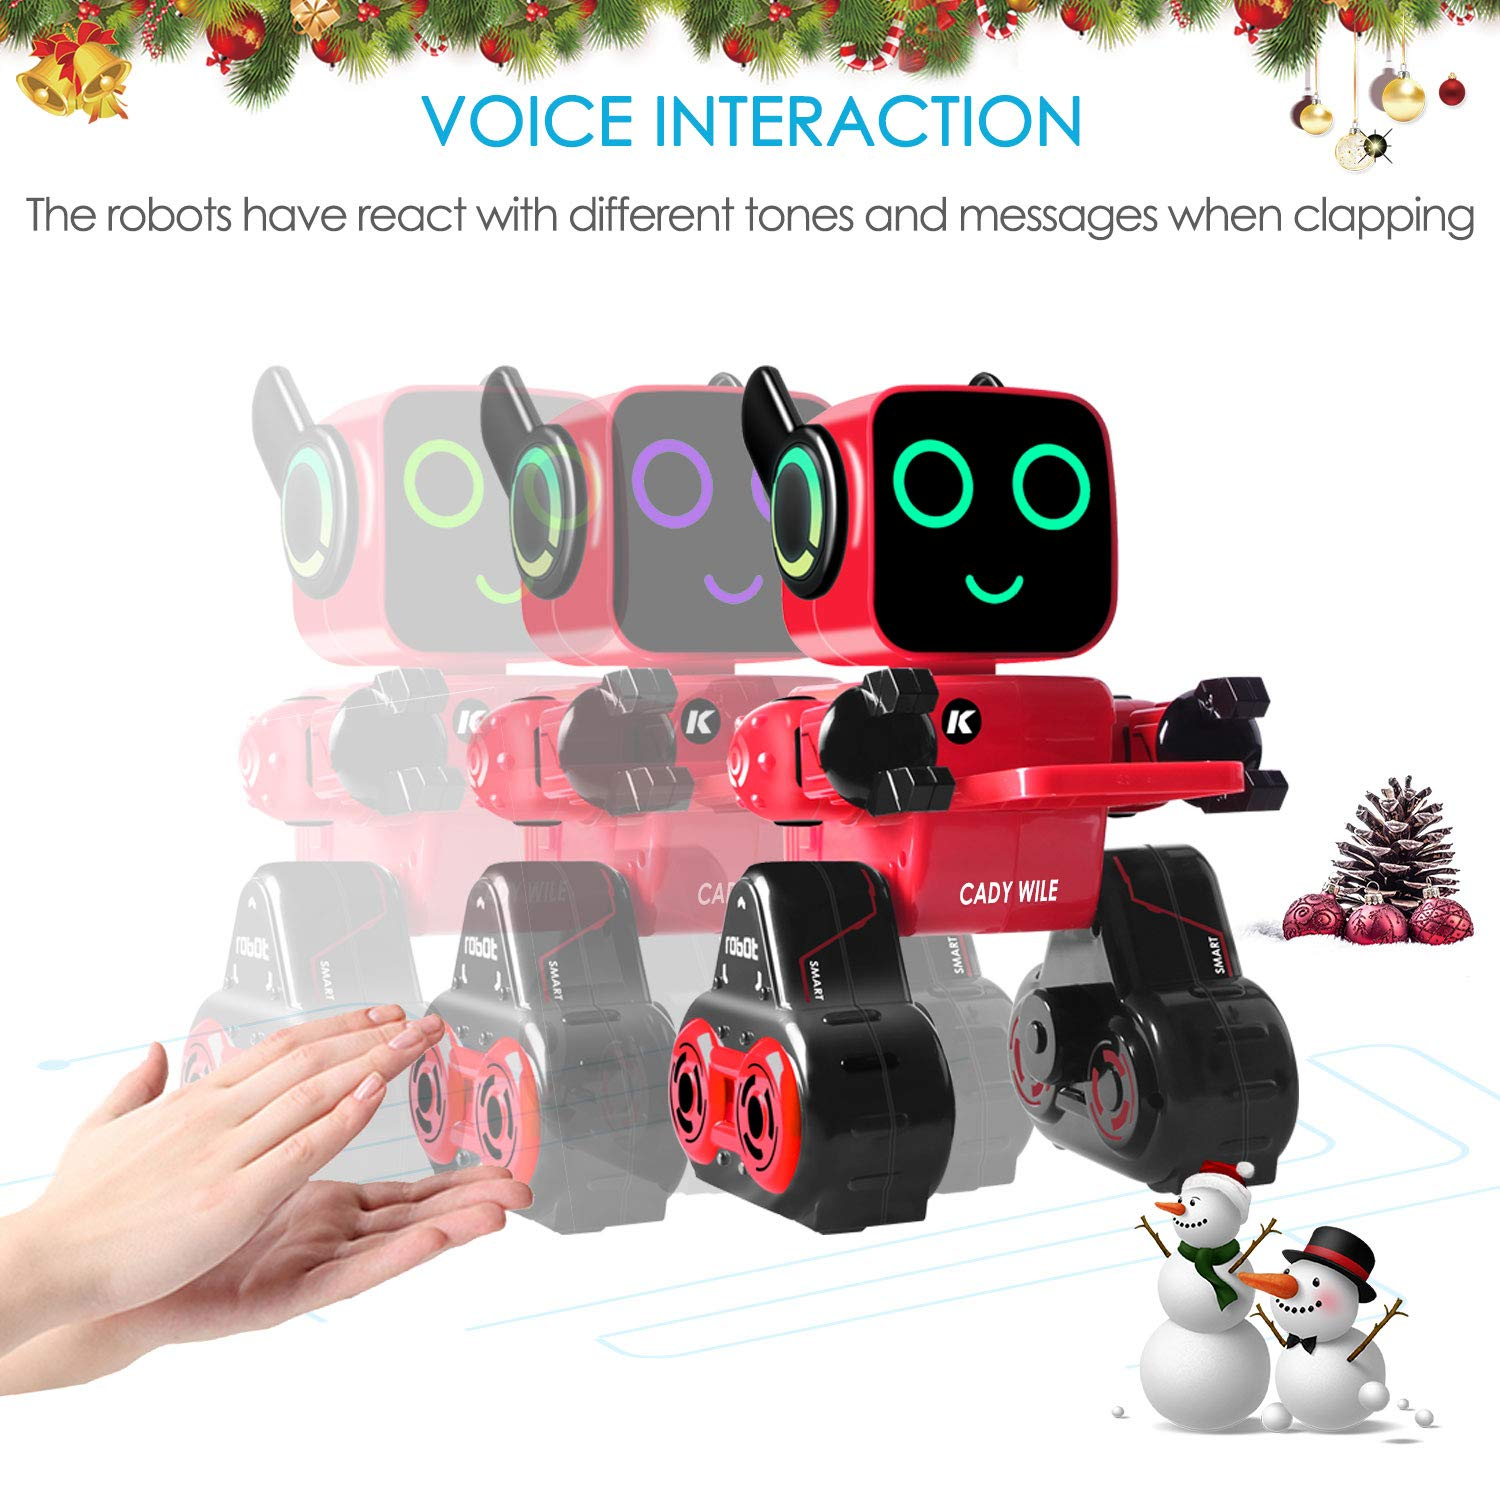 IHBUDS Programmable Remote Control Toy Robot for Kids,Touch & Sound Control, Speaks, Dance Moves, Plays Music. Built-in Coin Bank.Rechargeable RC Robot Kit for Boys, Girls All Ages-Red/Black by IHBUDS (Image #7)